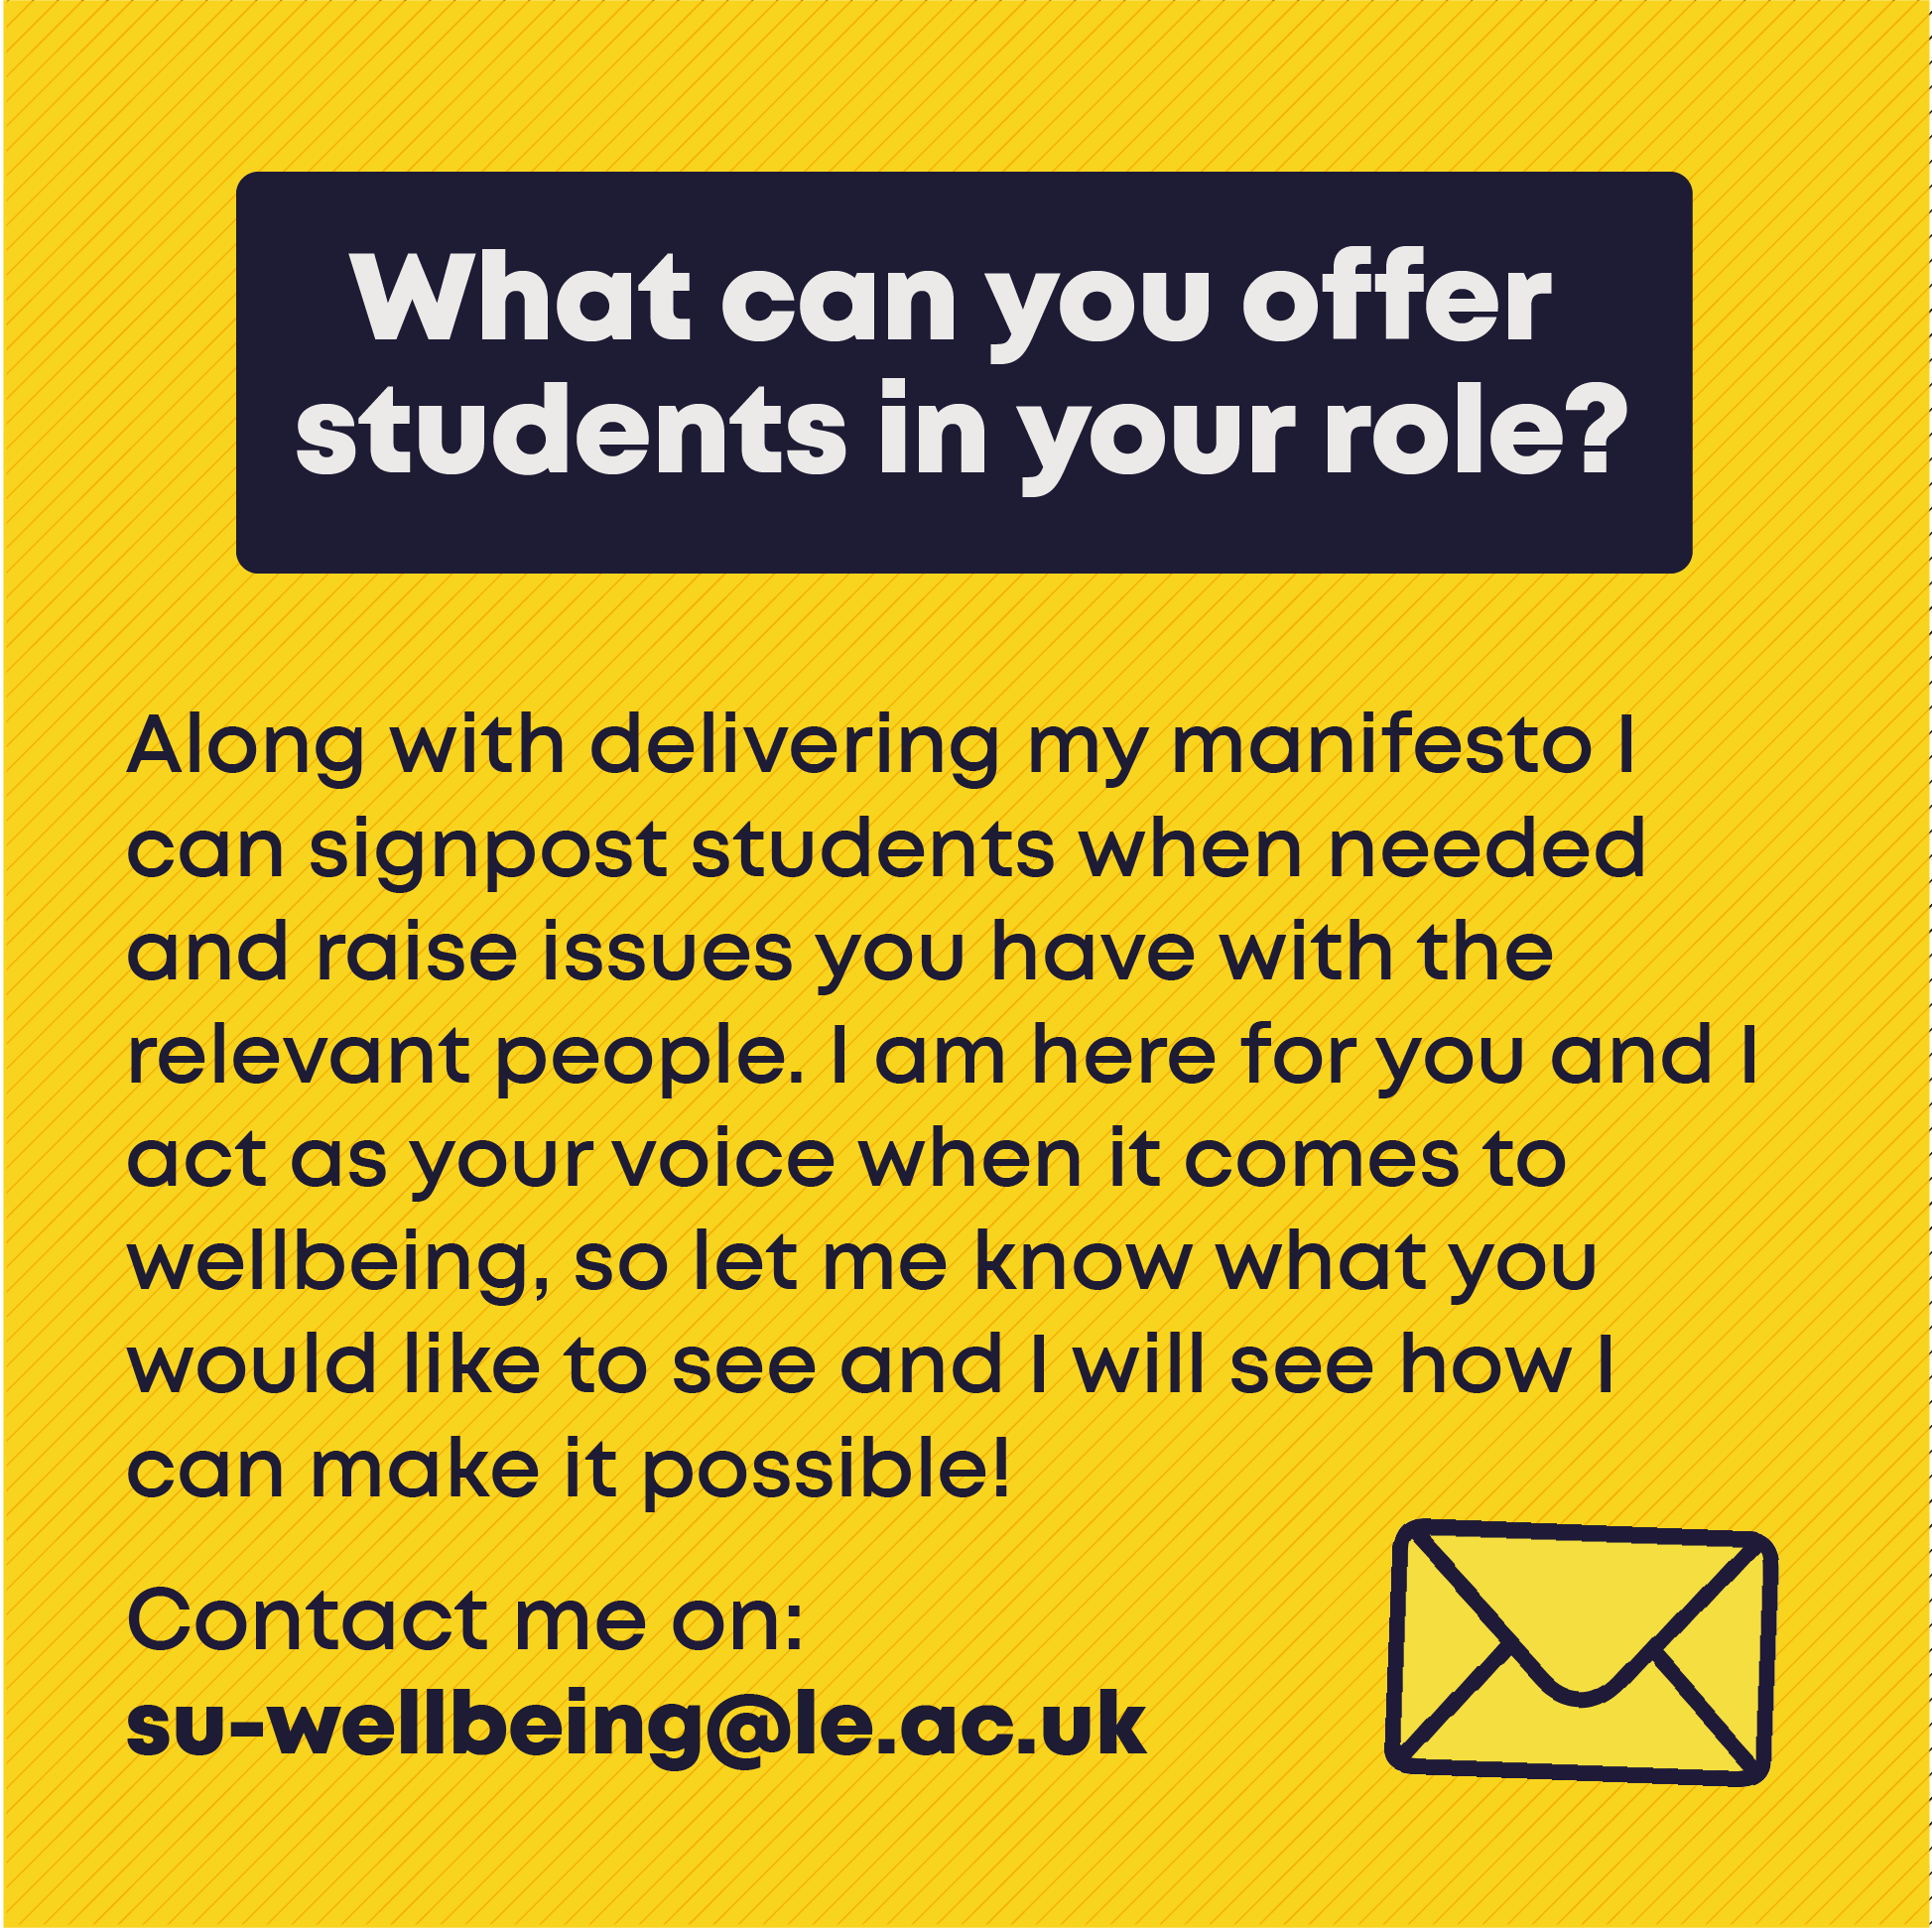 What can you offer students in your role? Along with delivering my manifesto I can signpost students when needed and raise issues you have with the relevant people. I am here for you and I act as your voice when it comes to wellbeing, so let me know what you would like to see and I will see how I can make it possible! Contact me on: su-wellbeing@le.ac.uk